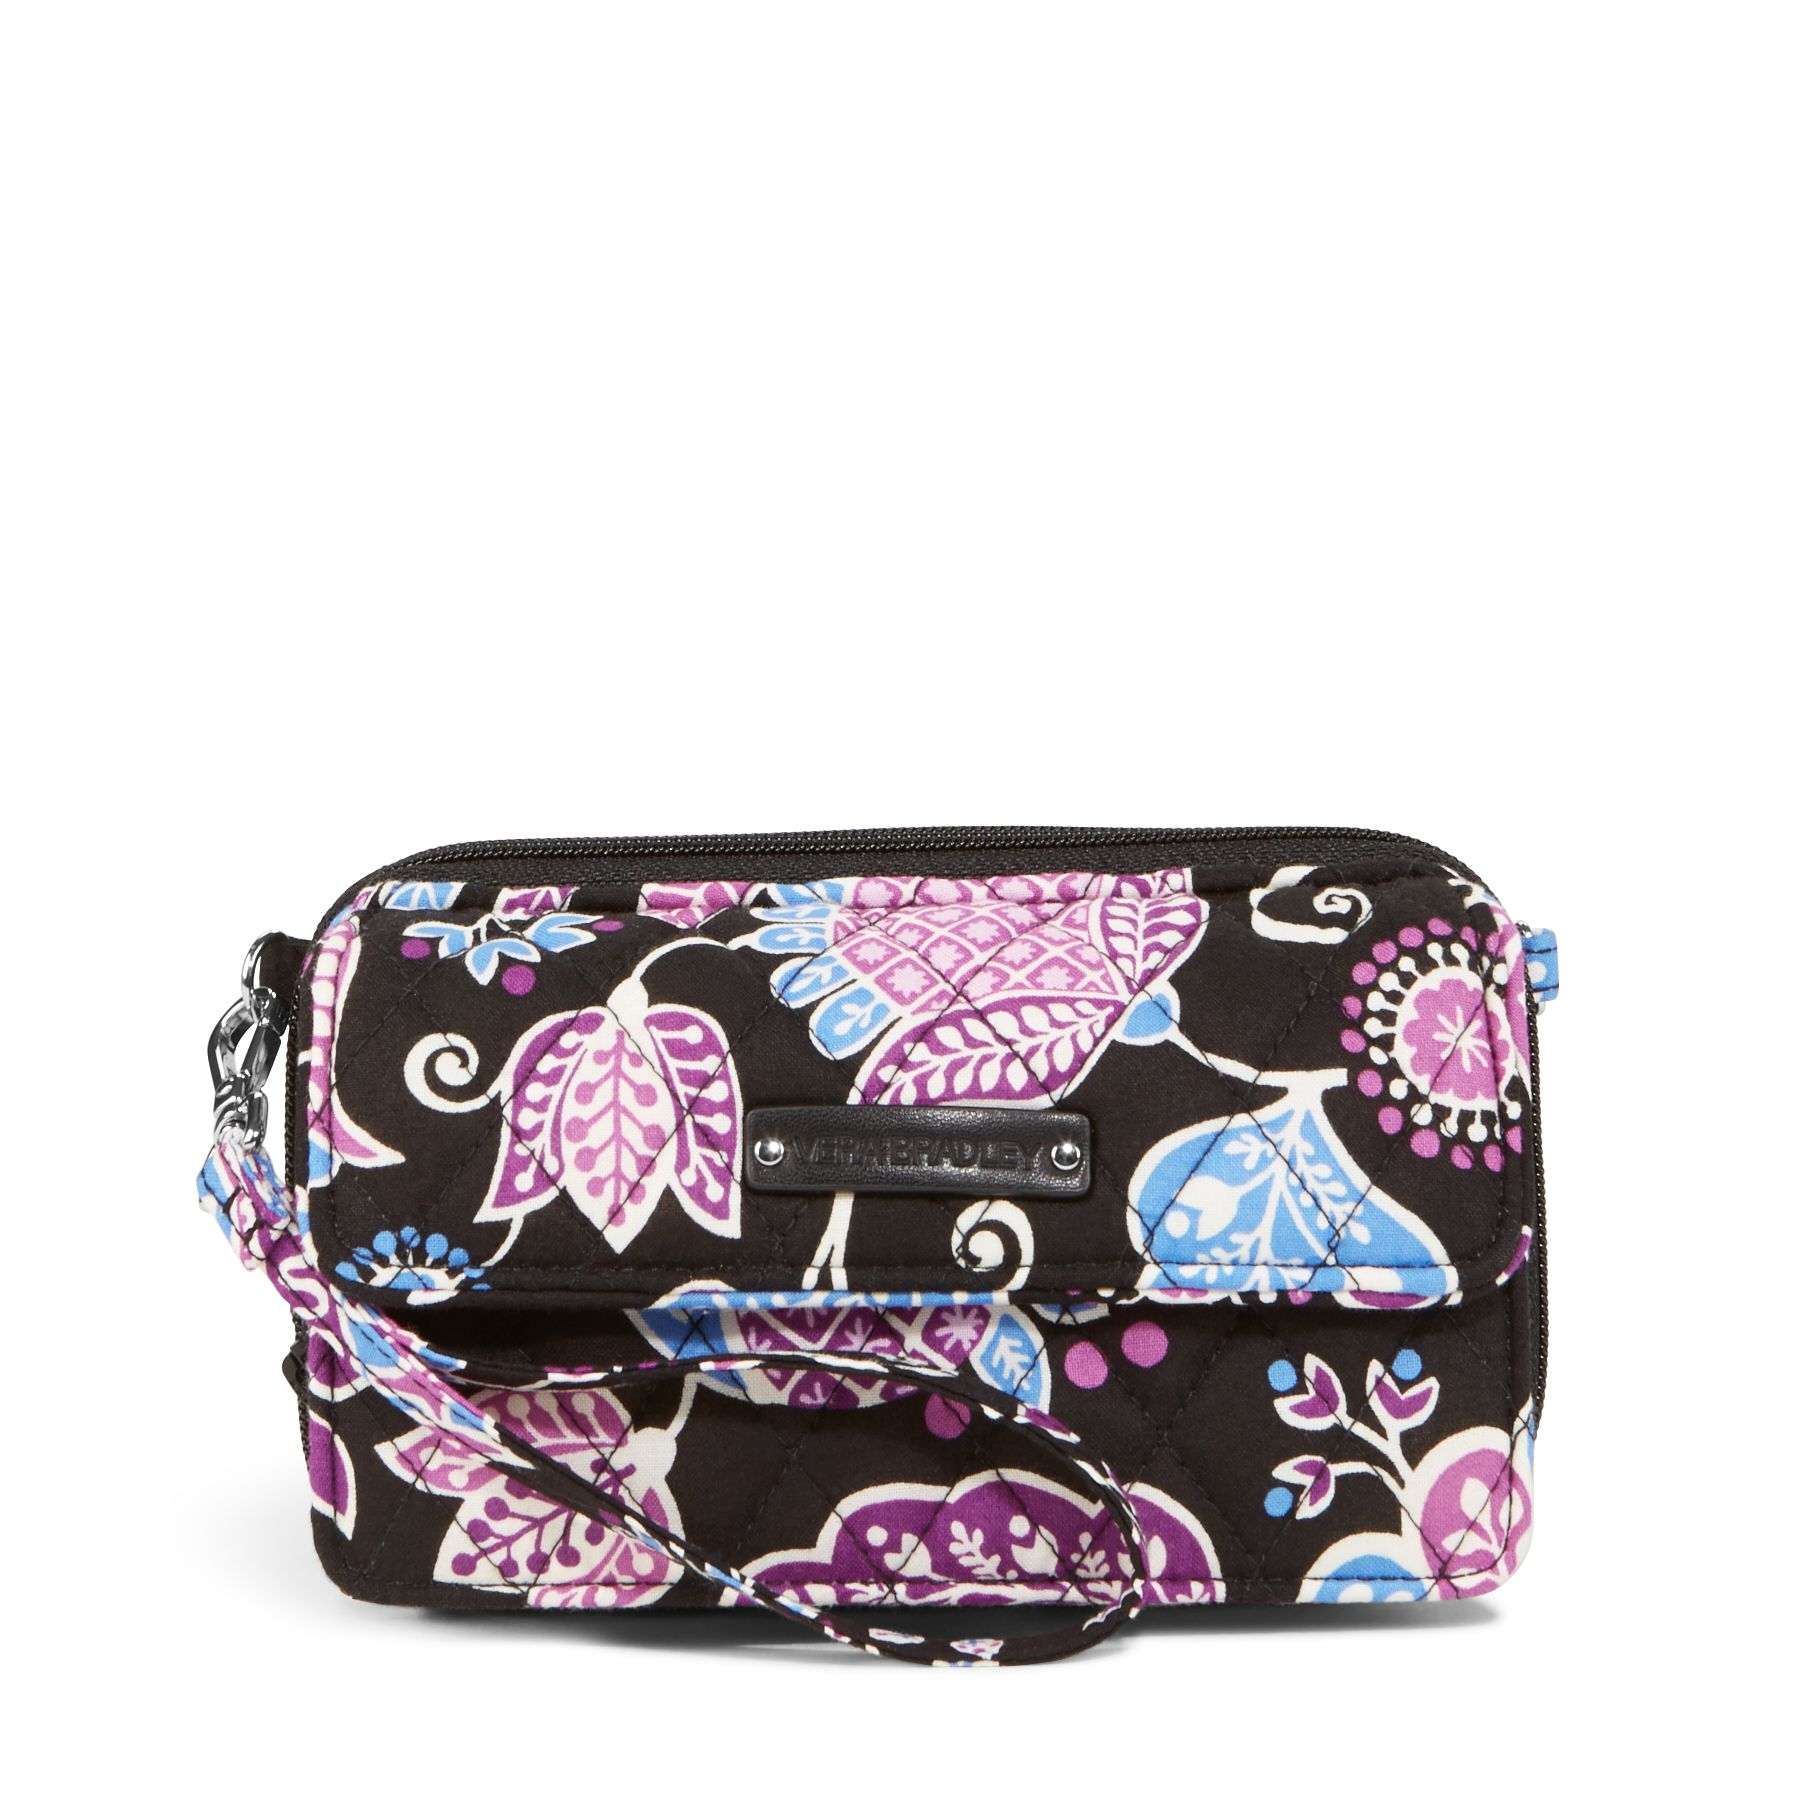 Vera Bradley All in One Crossbody and Wristlet for iPhone 6+ in Alpine Floral